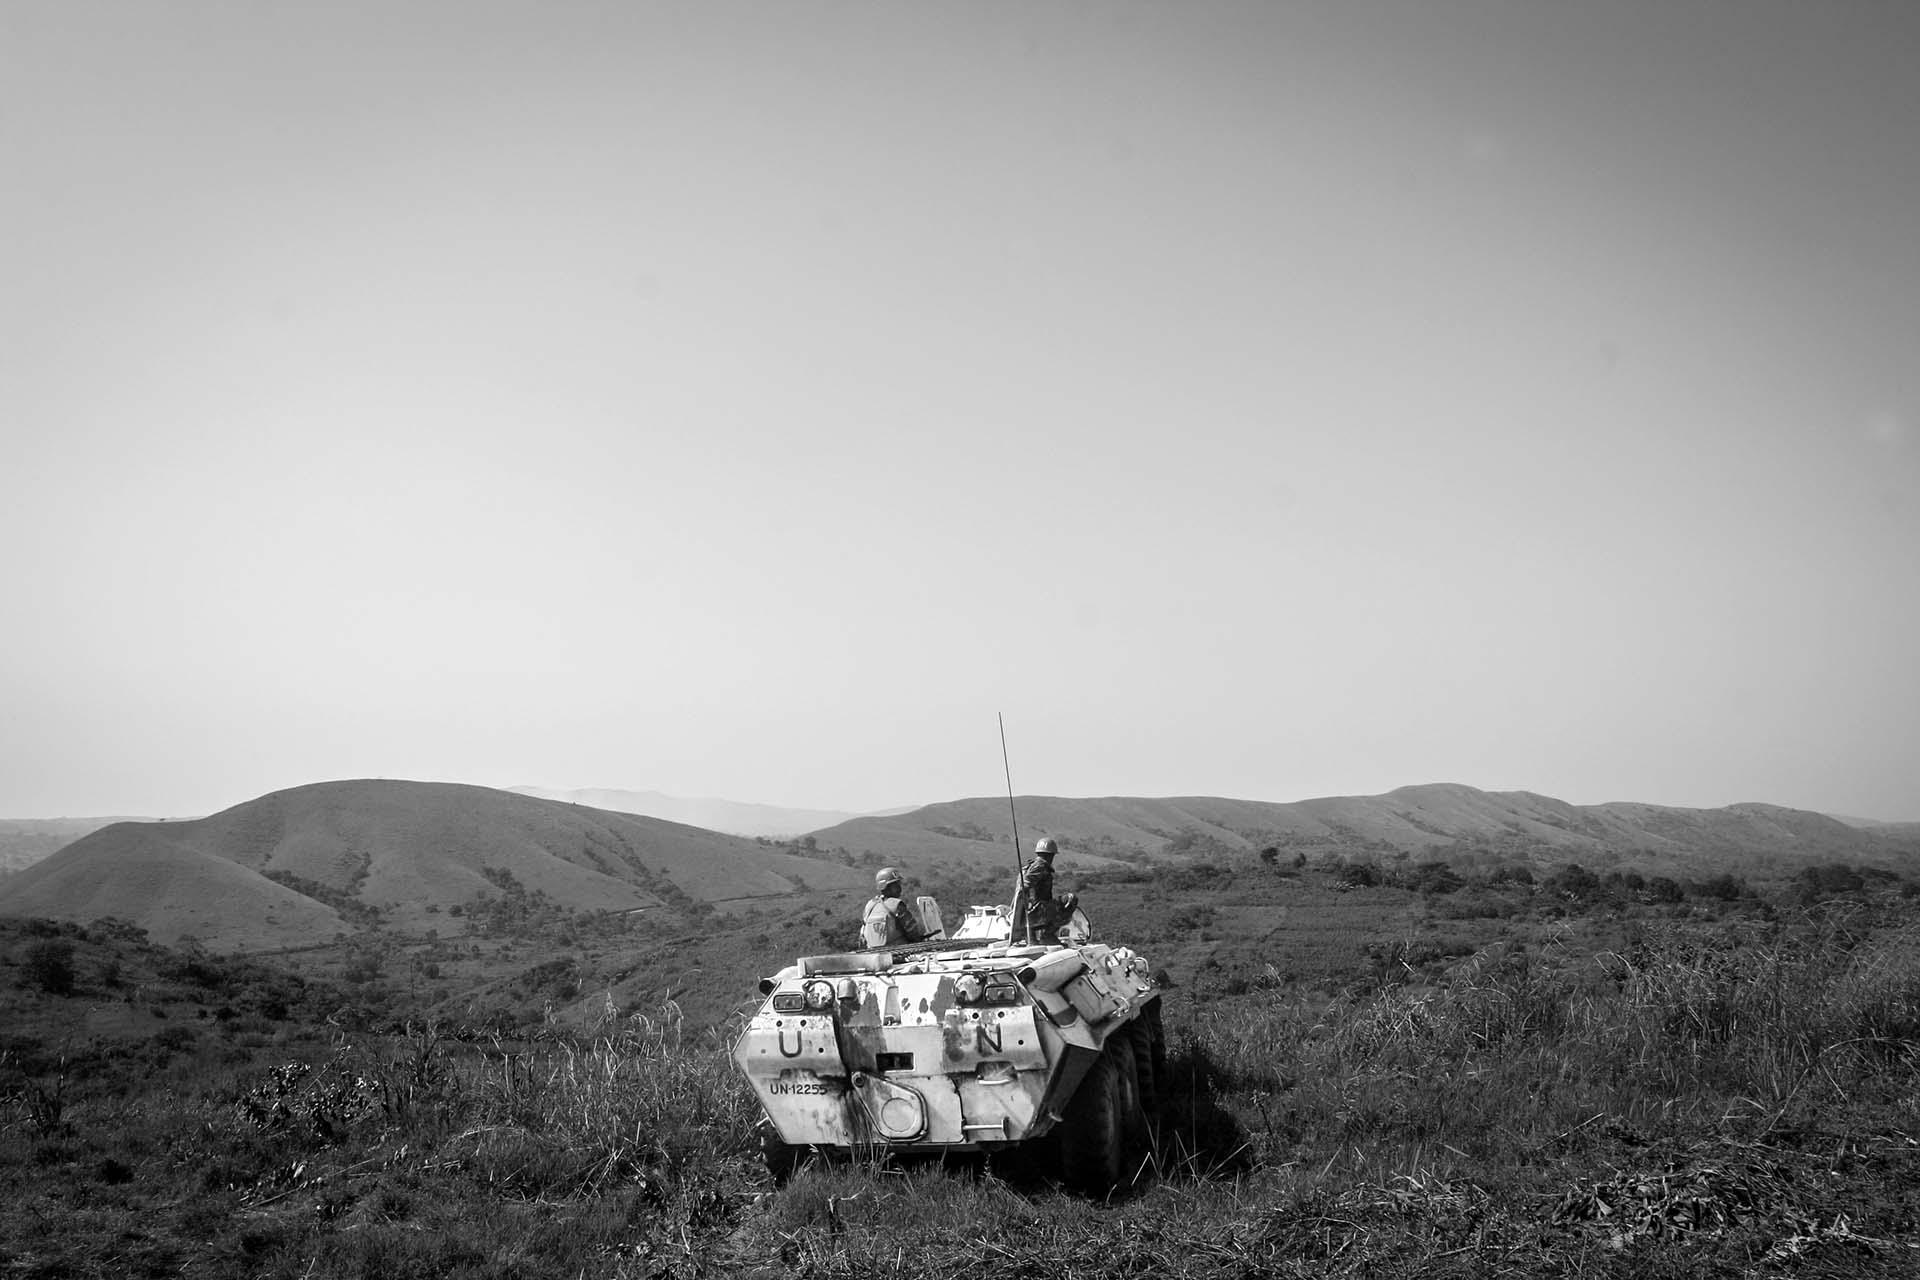 Bangladeshi  UN peacekeepers ride an armored personnel carrier to the hilltop overlooking the village of Bavi, the scene of fighting between UN supported government troops and local insurgents.